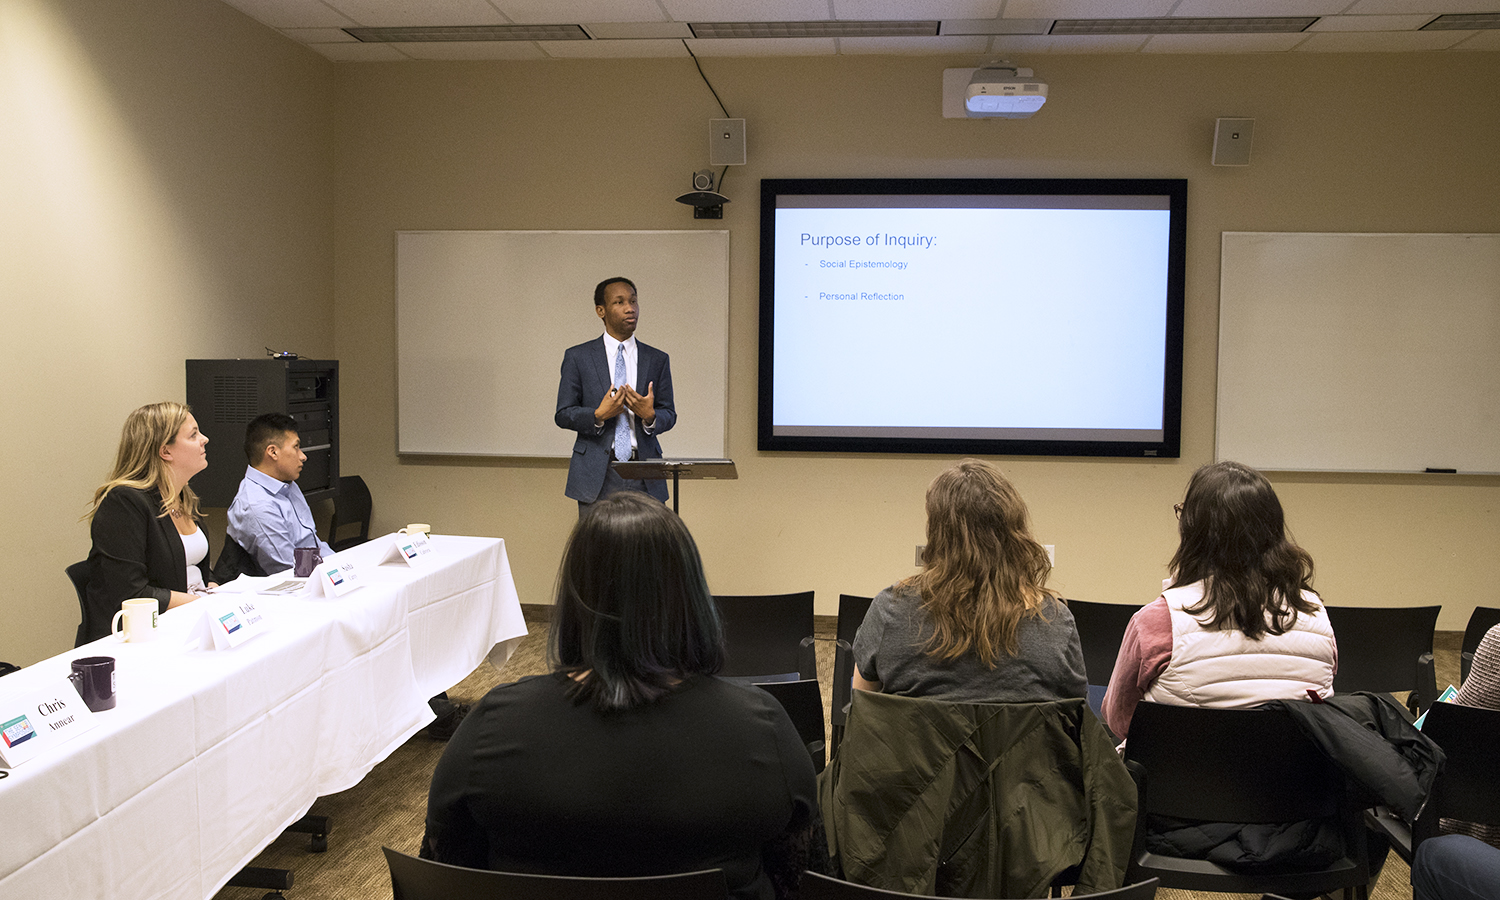 """Luke Patmore â18 discusses his Senior Symposium presentation titled """"The Seen yet Unseen Black Male Figure: The Epistemic Position of the AfricanAmerican Male in 21st Century America"""" in the Warren Hunting Smith Library Learning Studio 3."""